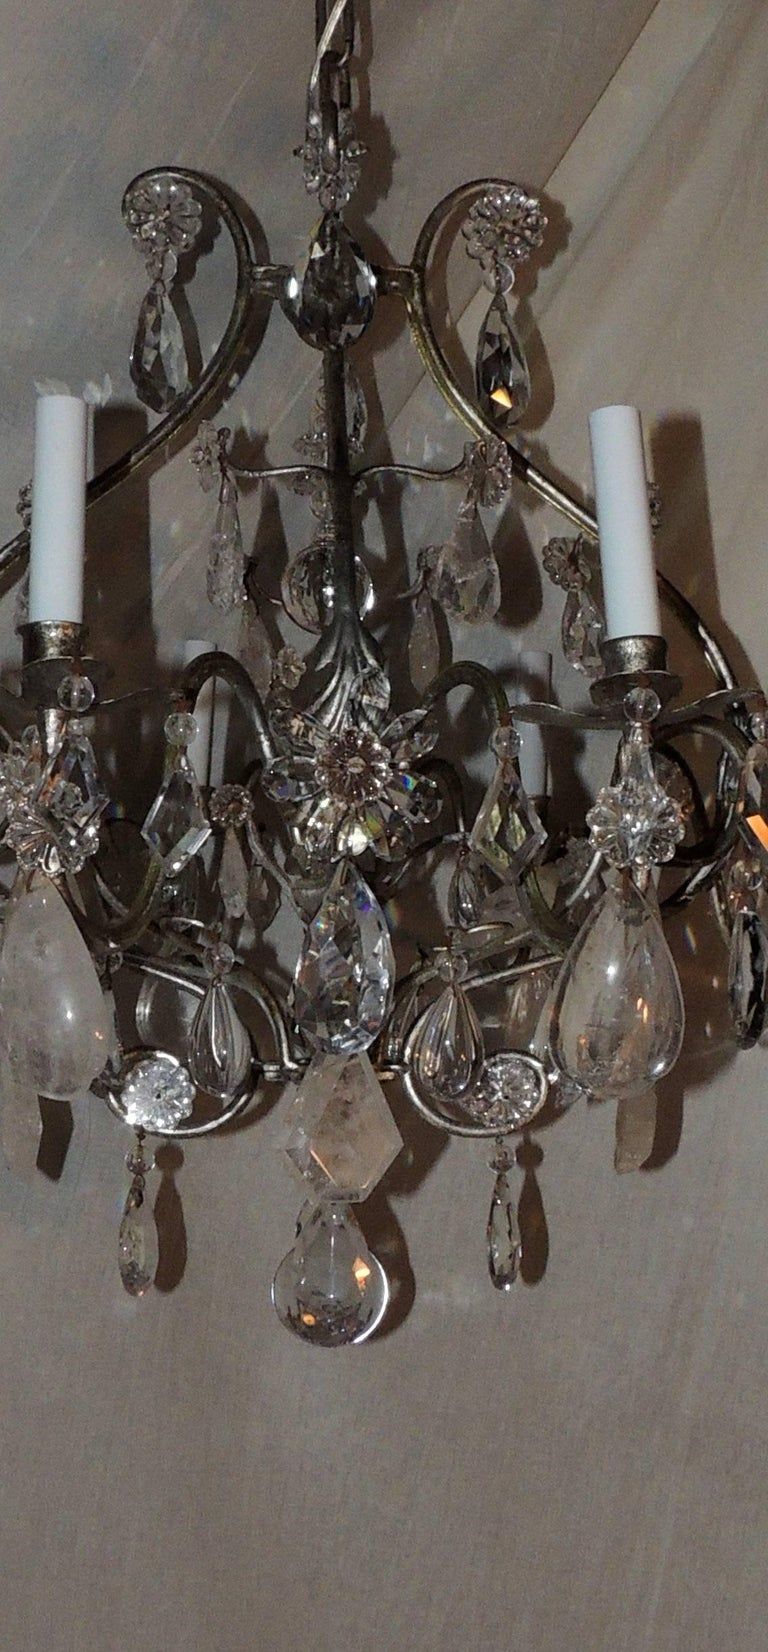 Transitional Silvered Gilt Bagues Eight-Light Rock Crystal Jansen Chandelier For Sale 2